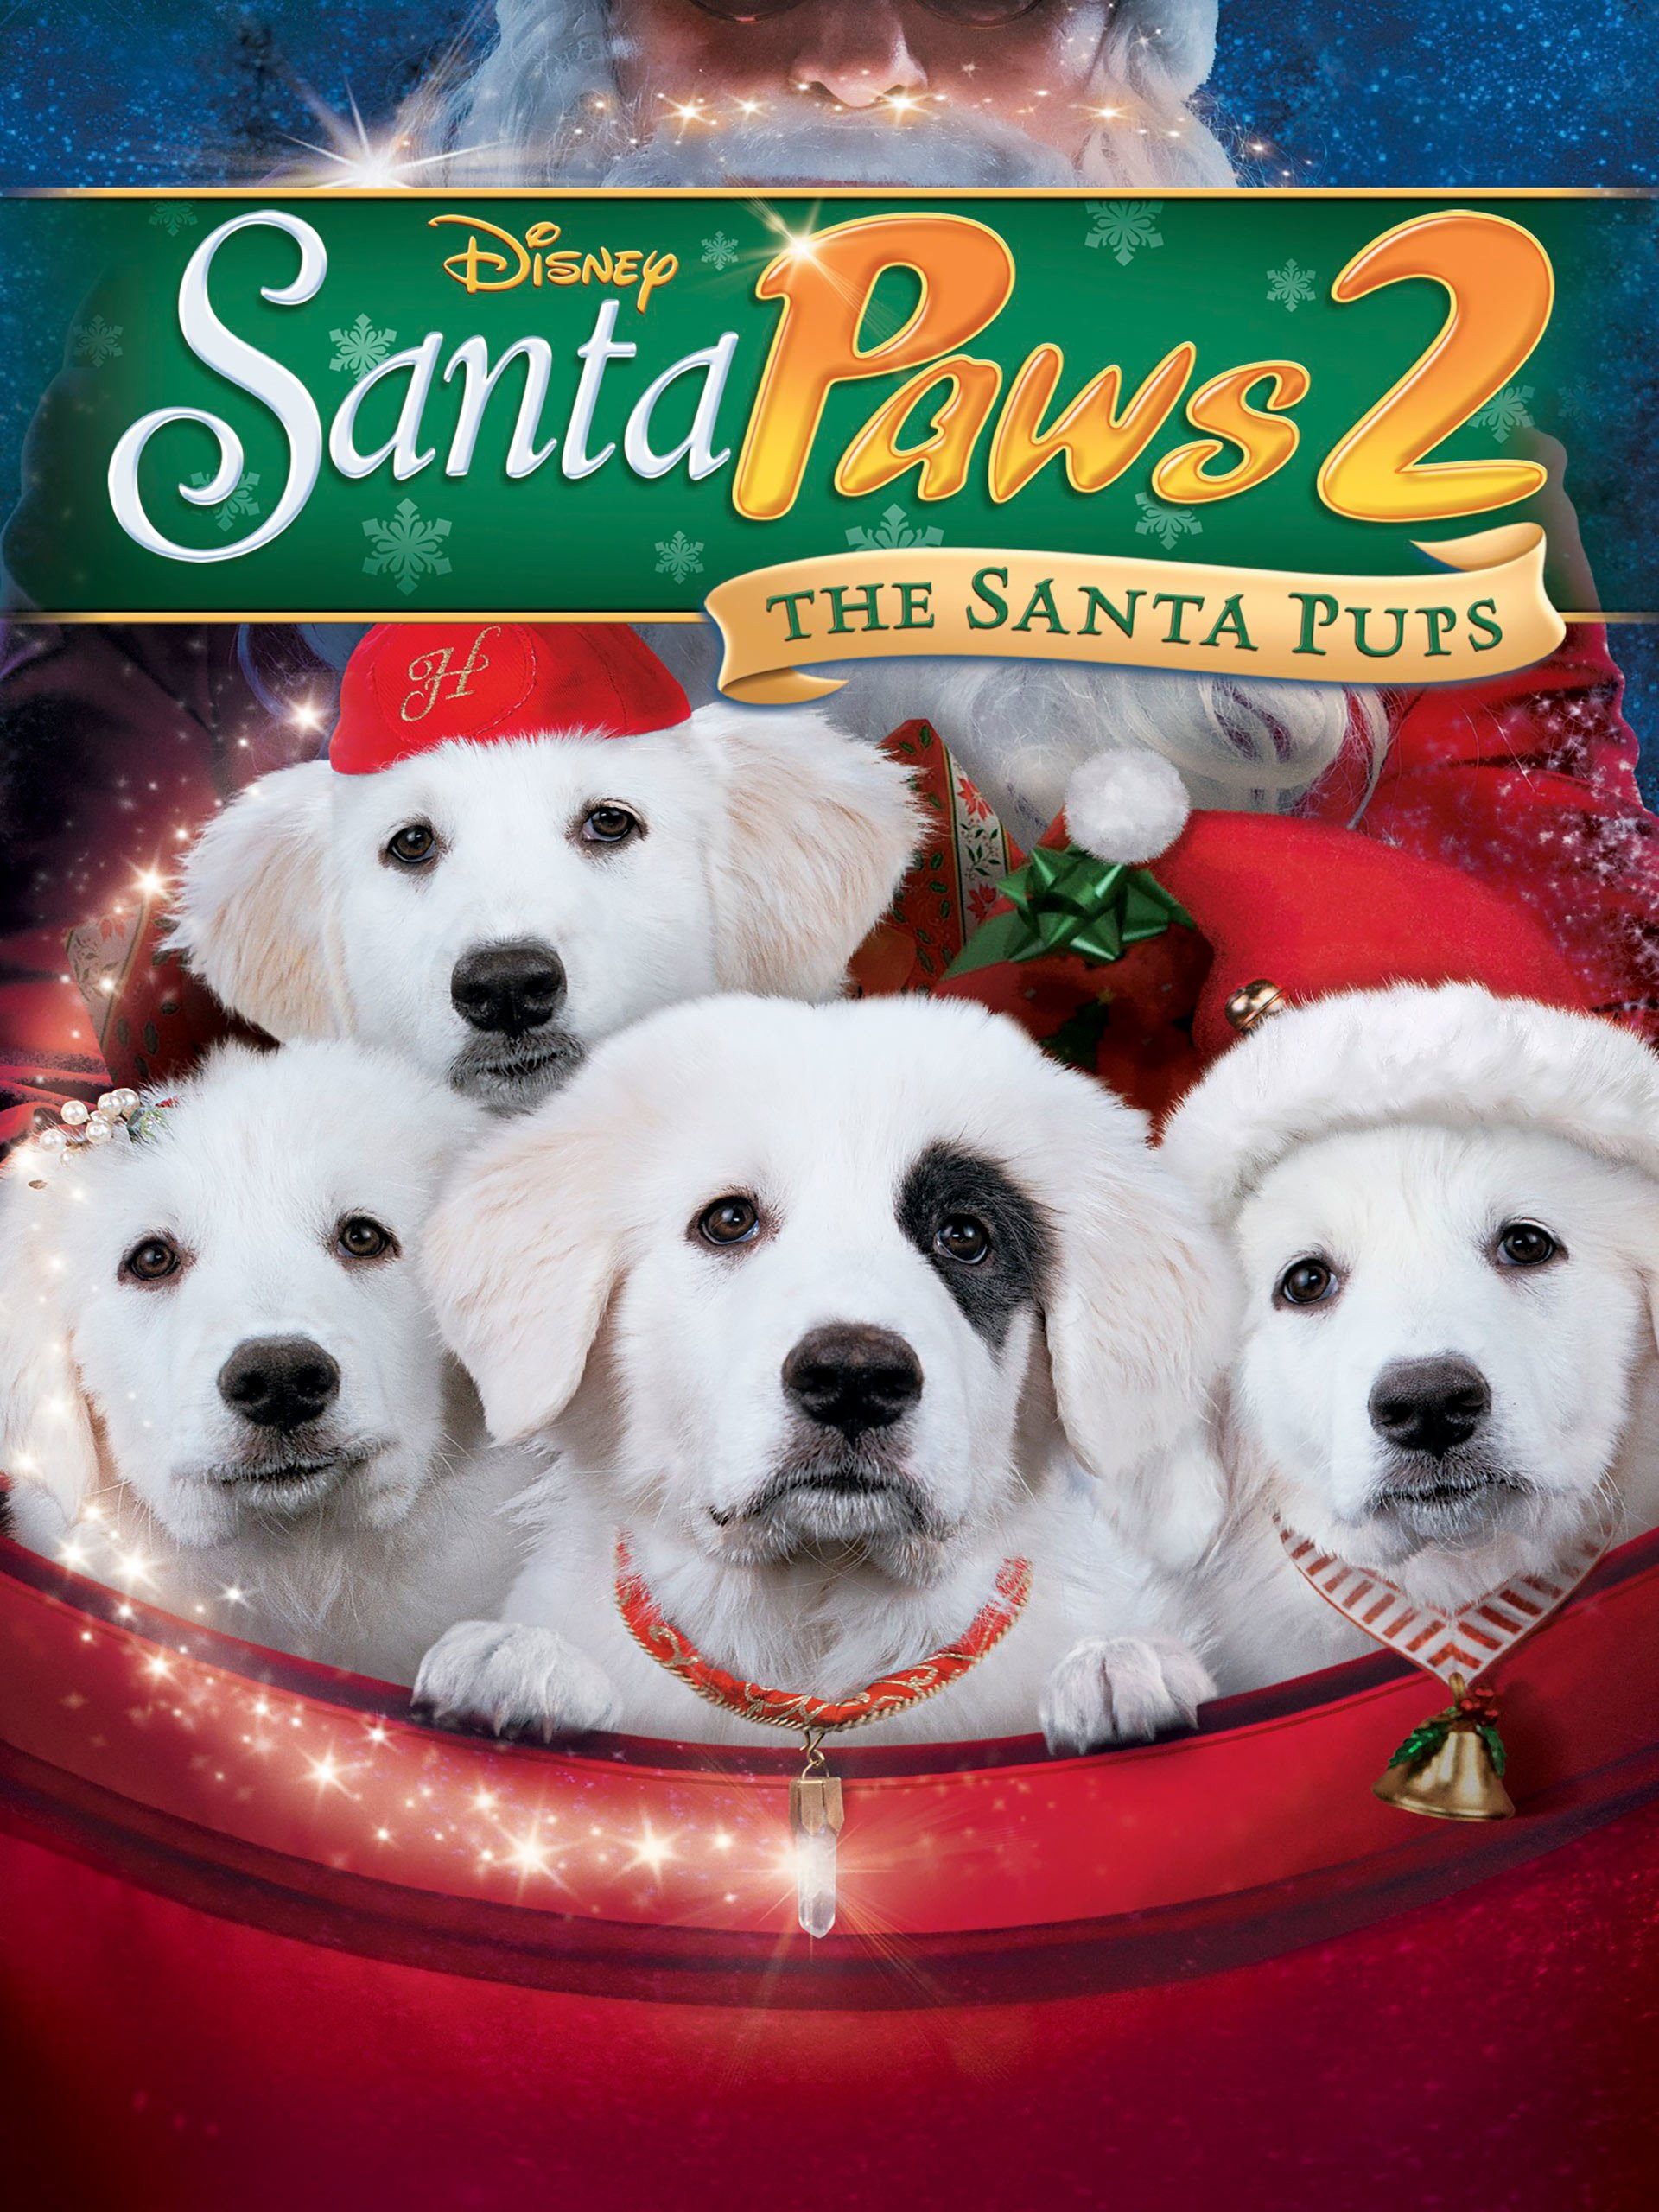 Santa Paws 2 The Santa Pups